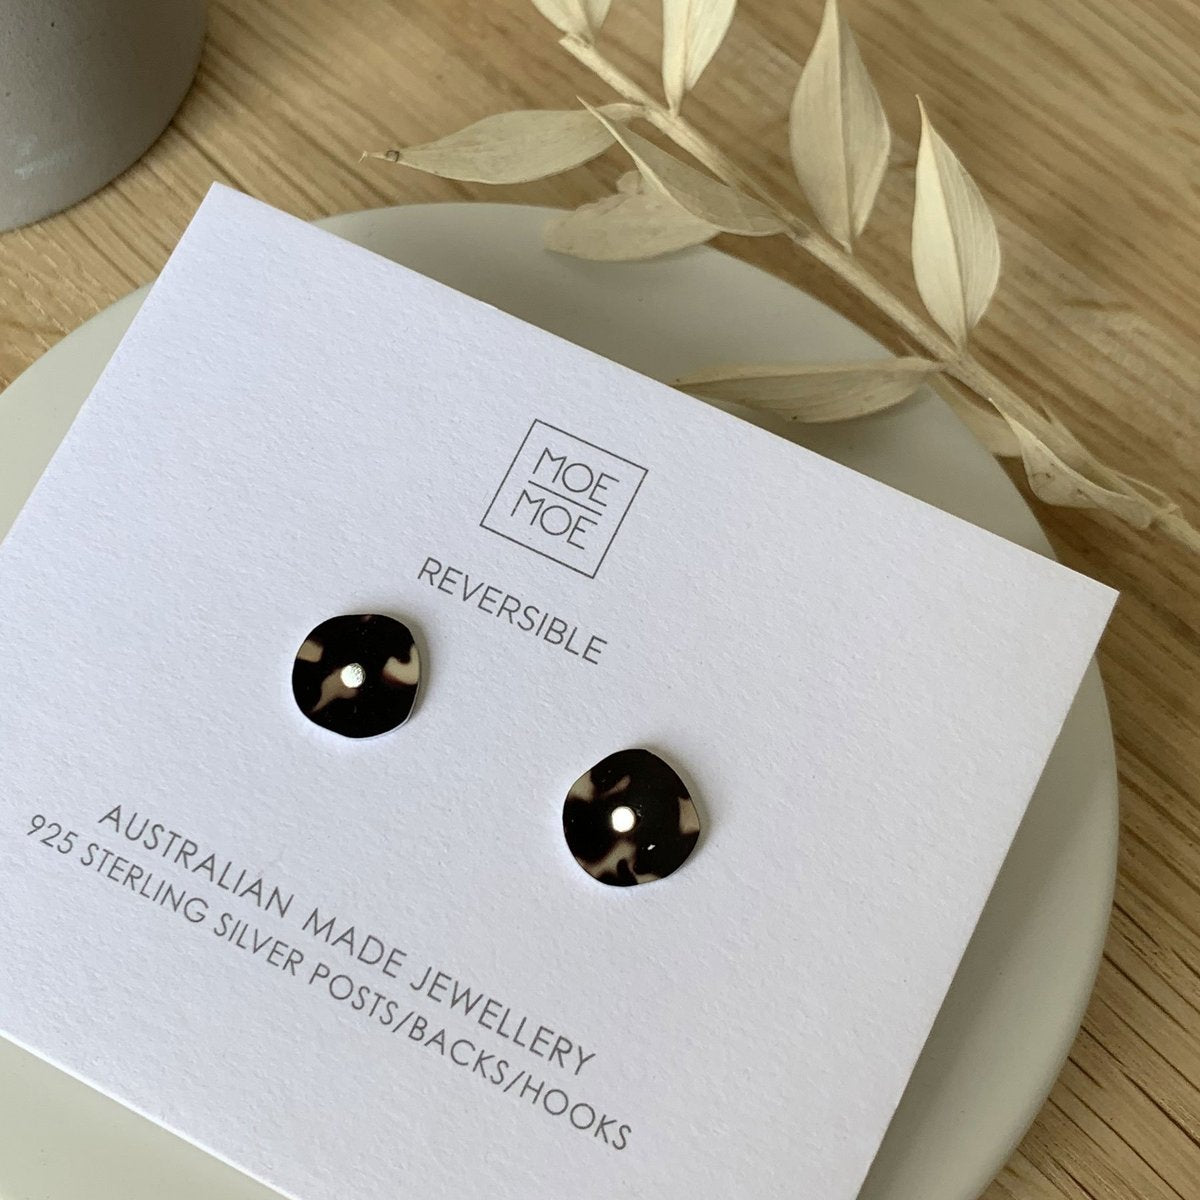 Moe Moe Design Tortoise Shell Mini Pebble Stud Earrings